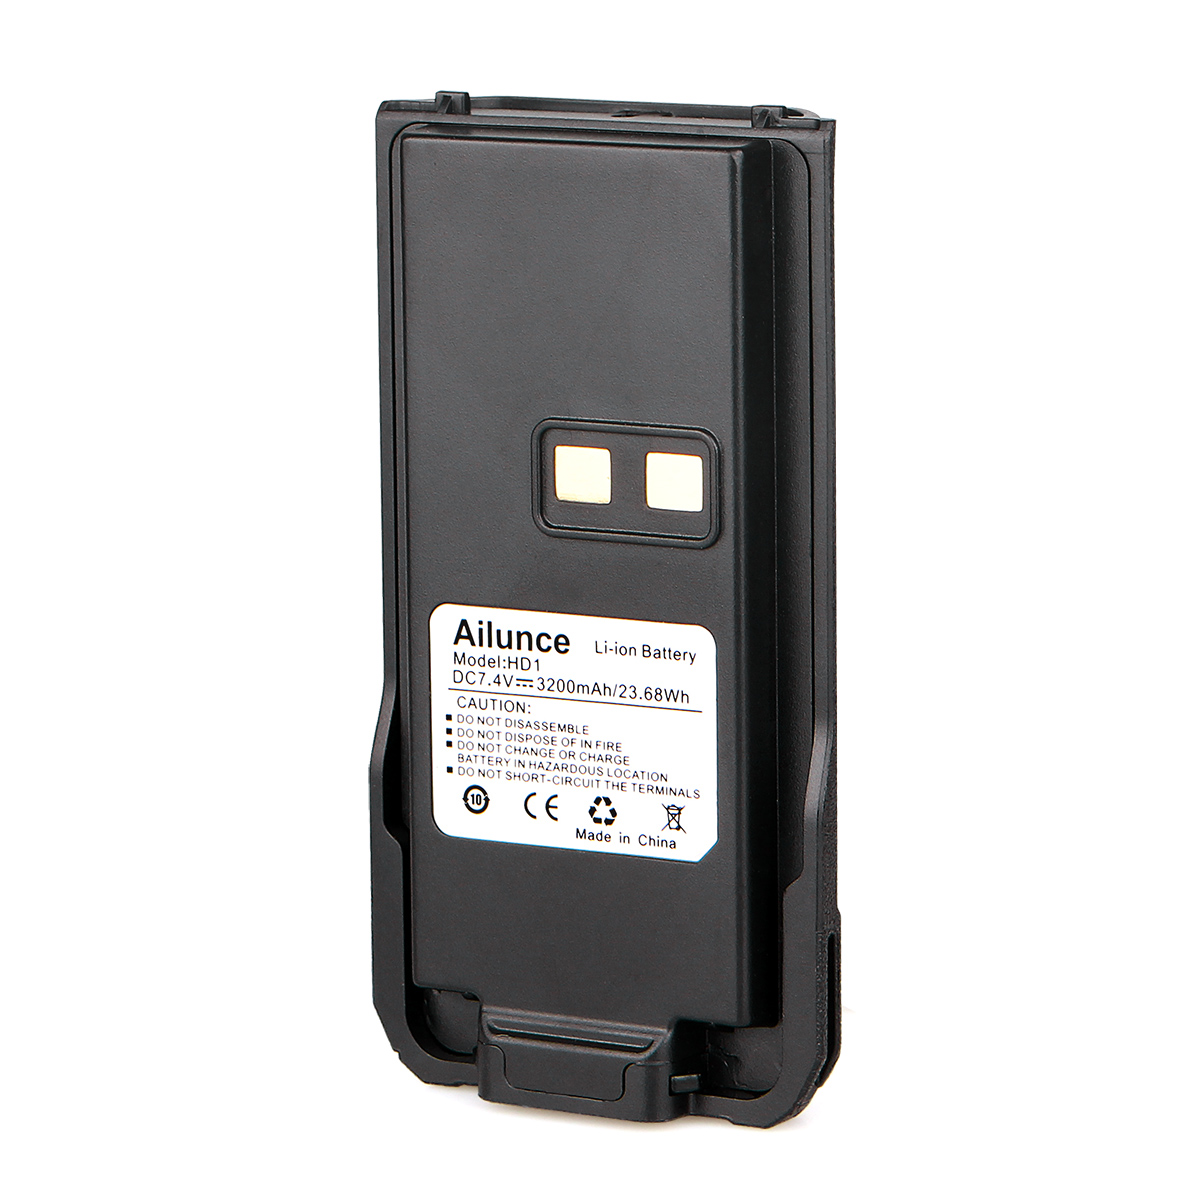 China Hd1 Battery, China Hd1 Battery Manufacturers and Suppliers on